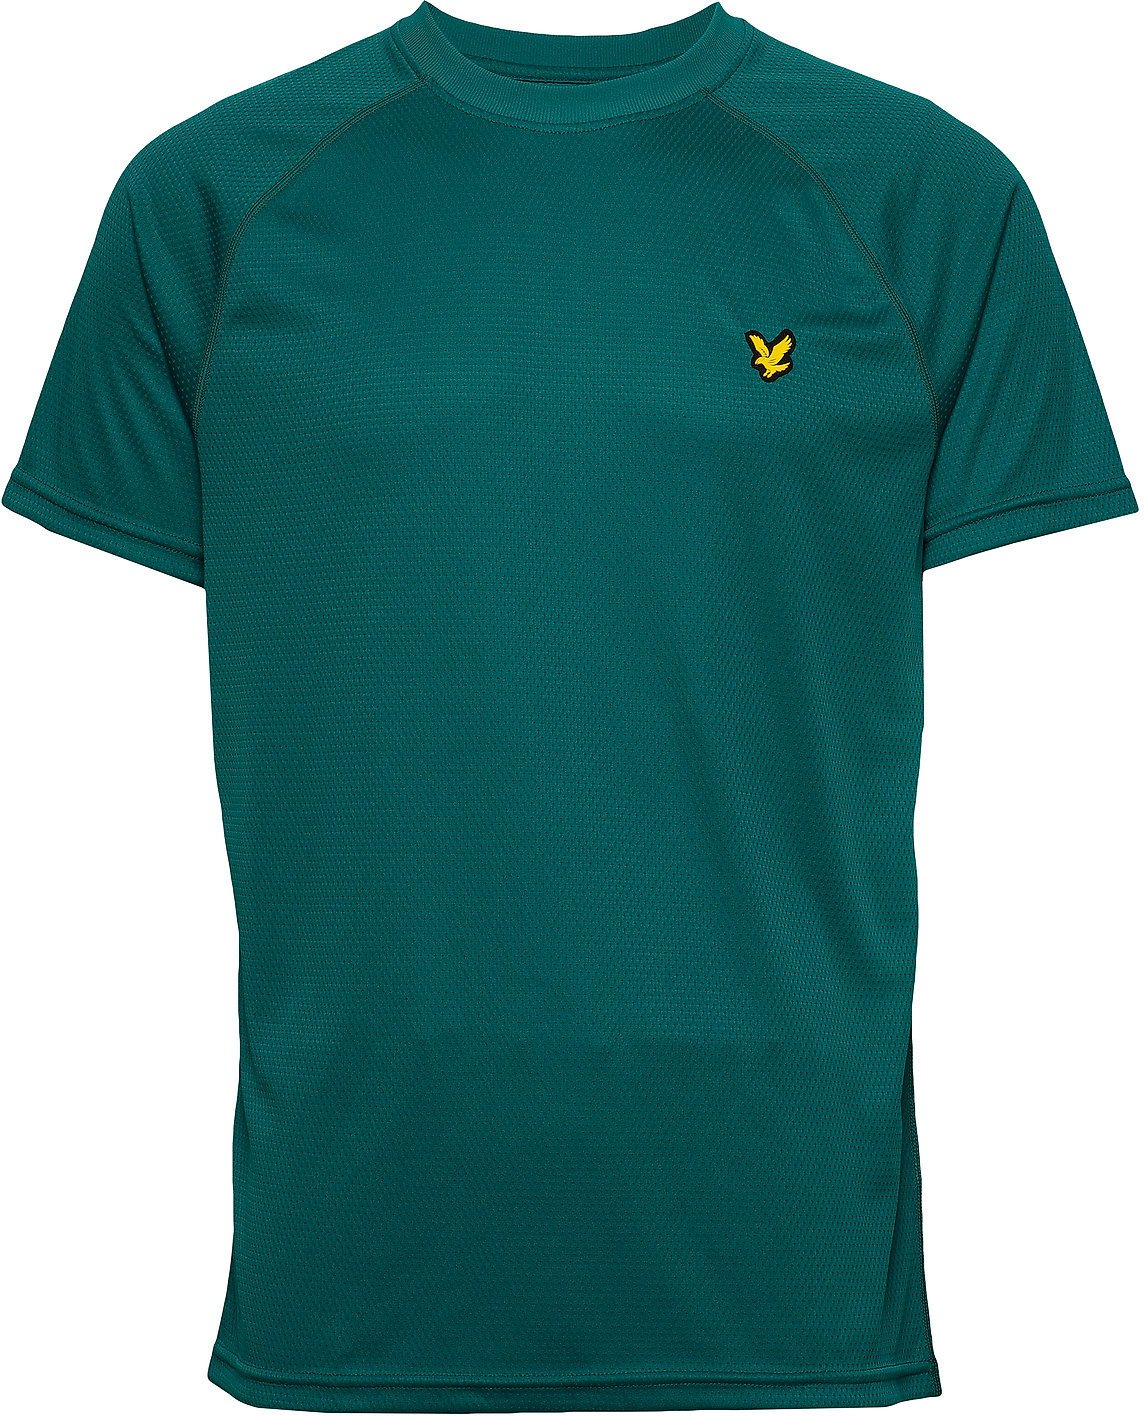 Lyle & Scott CORE RAGLAN - T-shirts - teal green